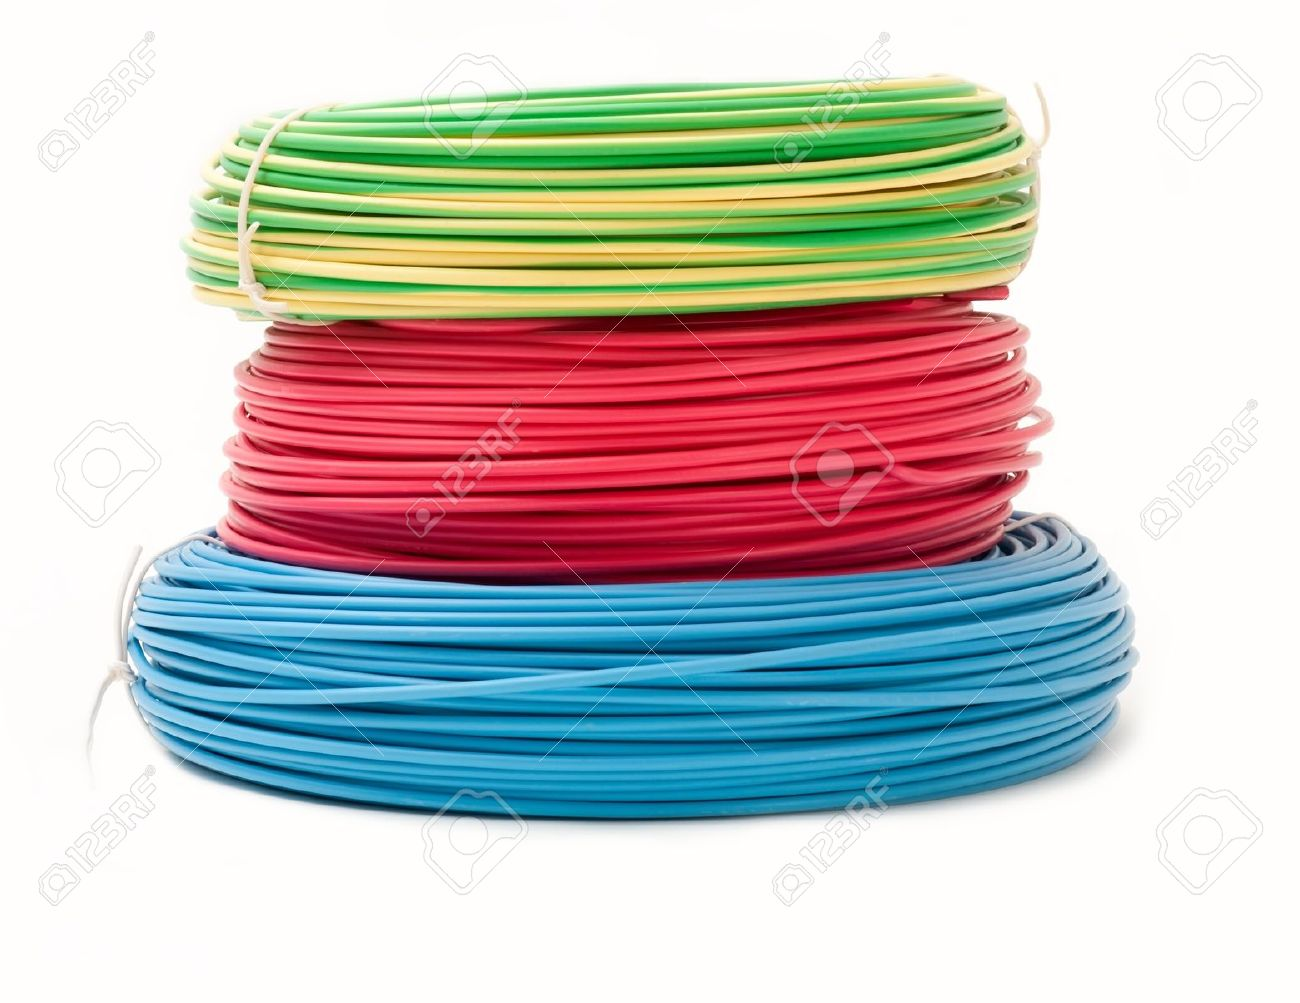 Green, Red And Blue Wire Bundles Isolated On White Stock Photo ...